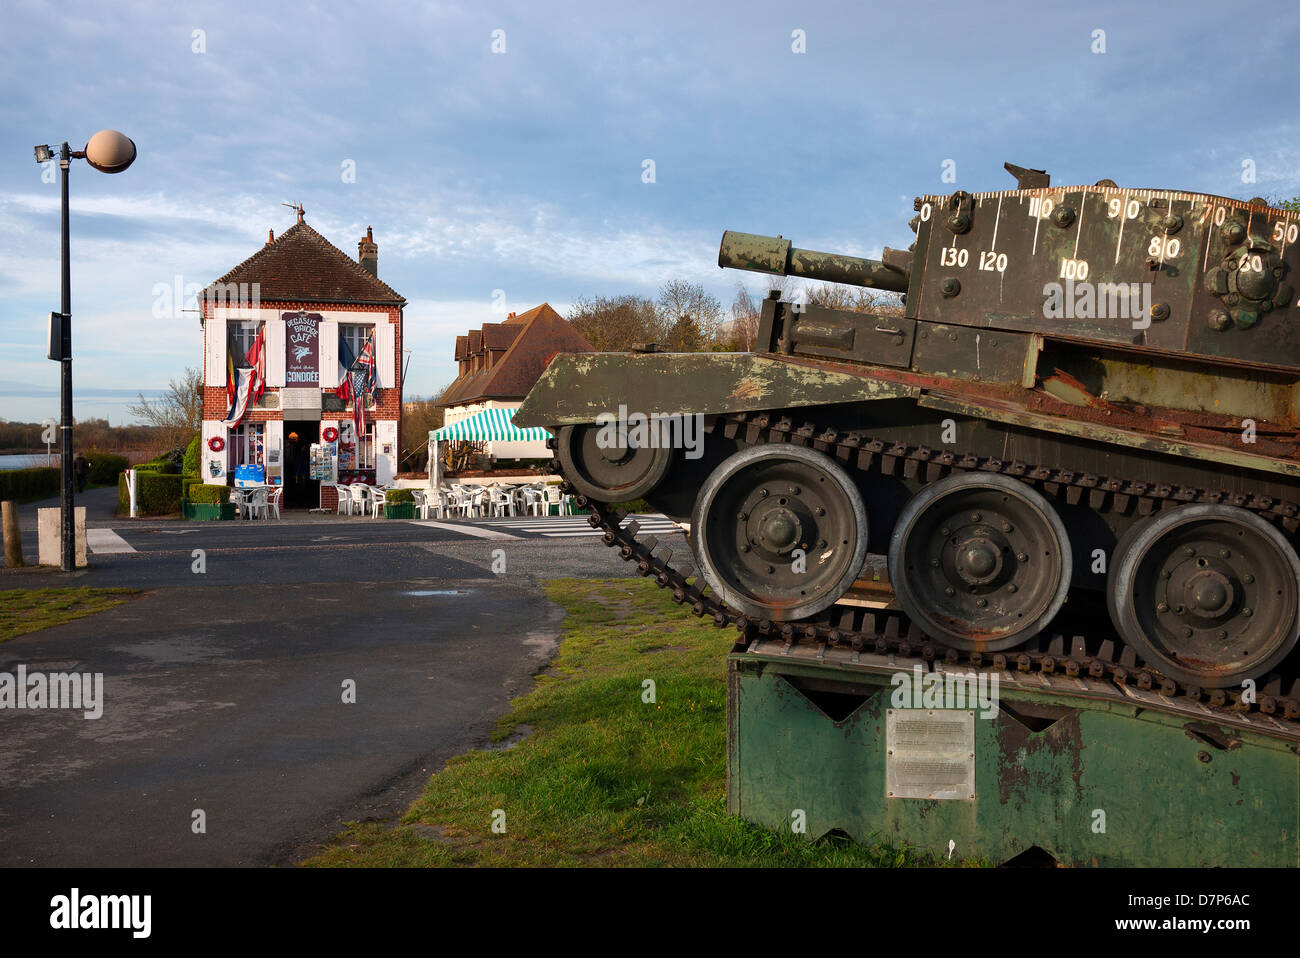 the pegasus bridge cafe near caen in france stock photo royalty free image 56421636 alamy. Black Bedroom Furniture Sets. Home Design Ideas